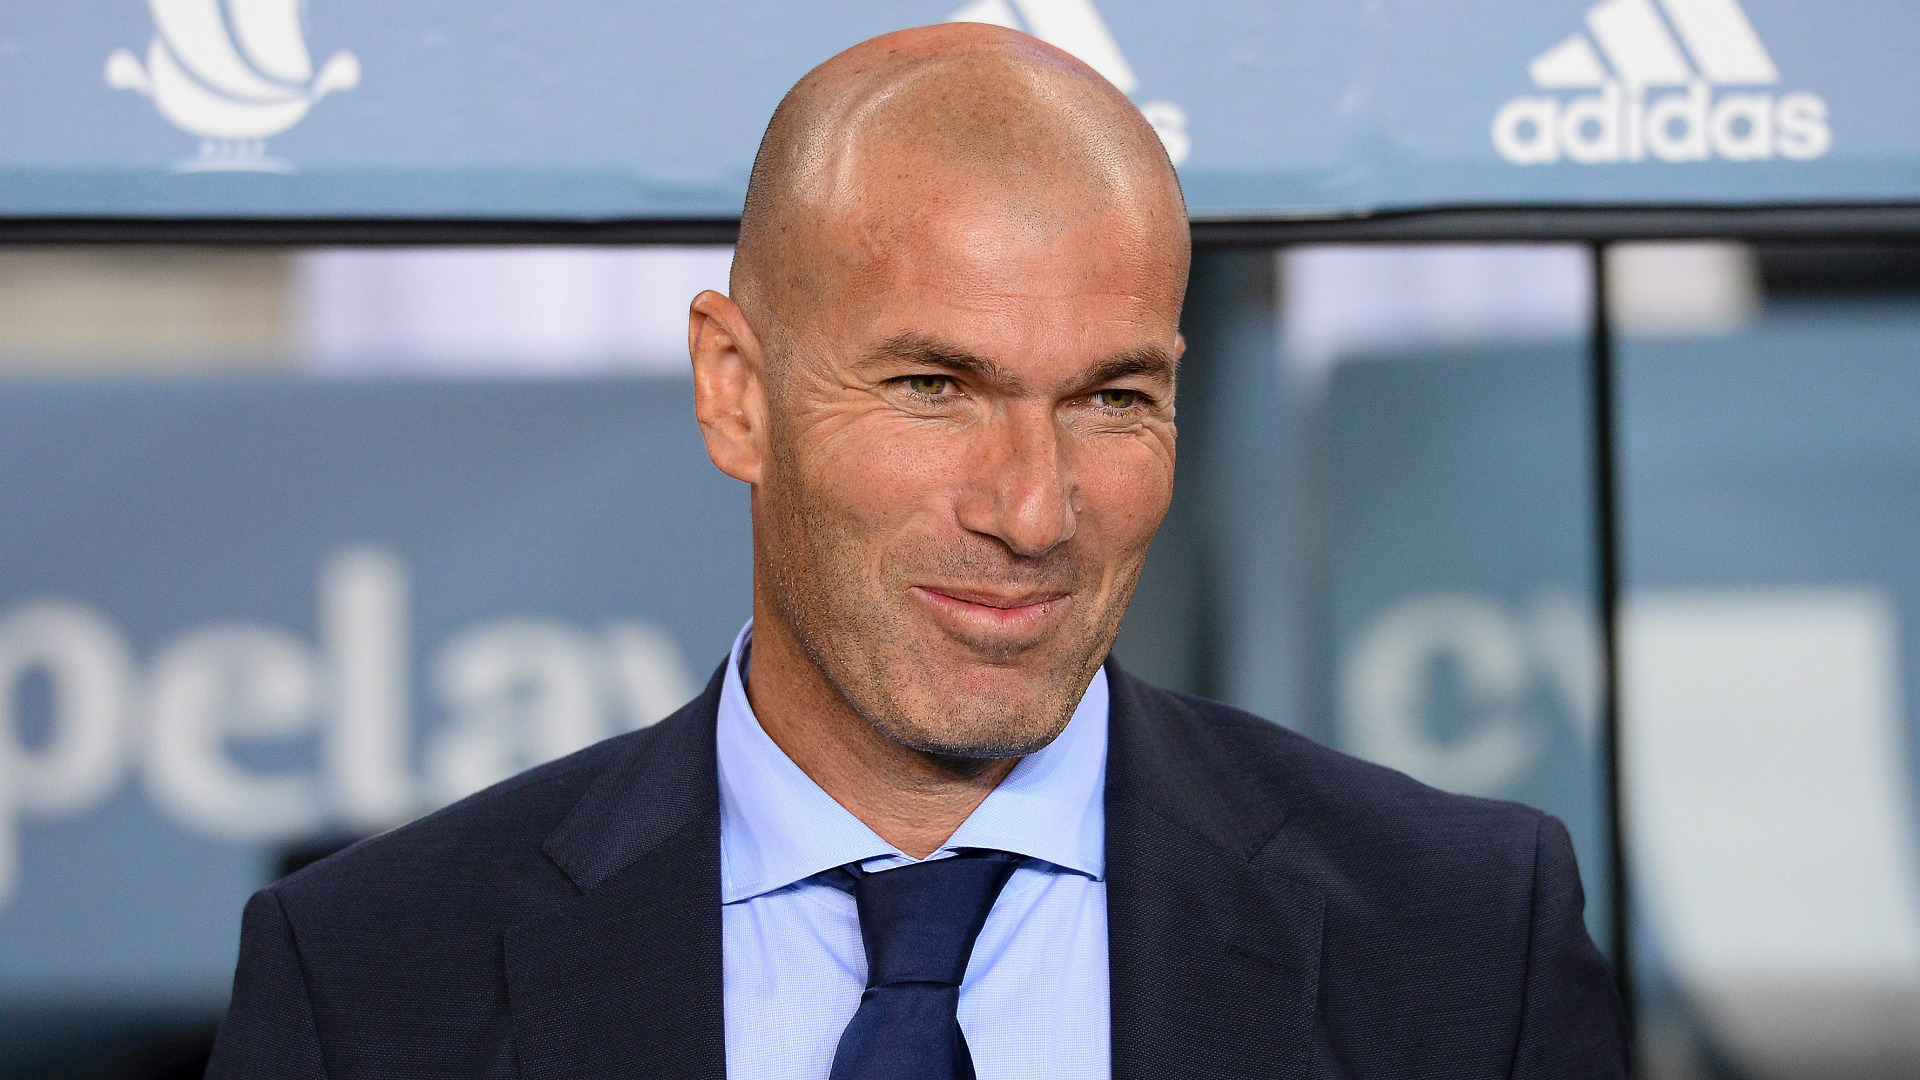 Real Madrid Star Signs Contract With €700 Million Release Clause